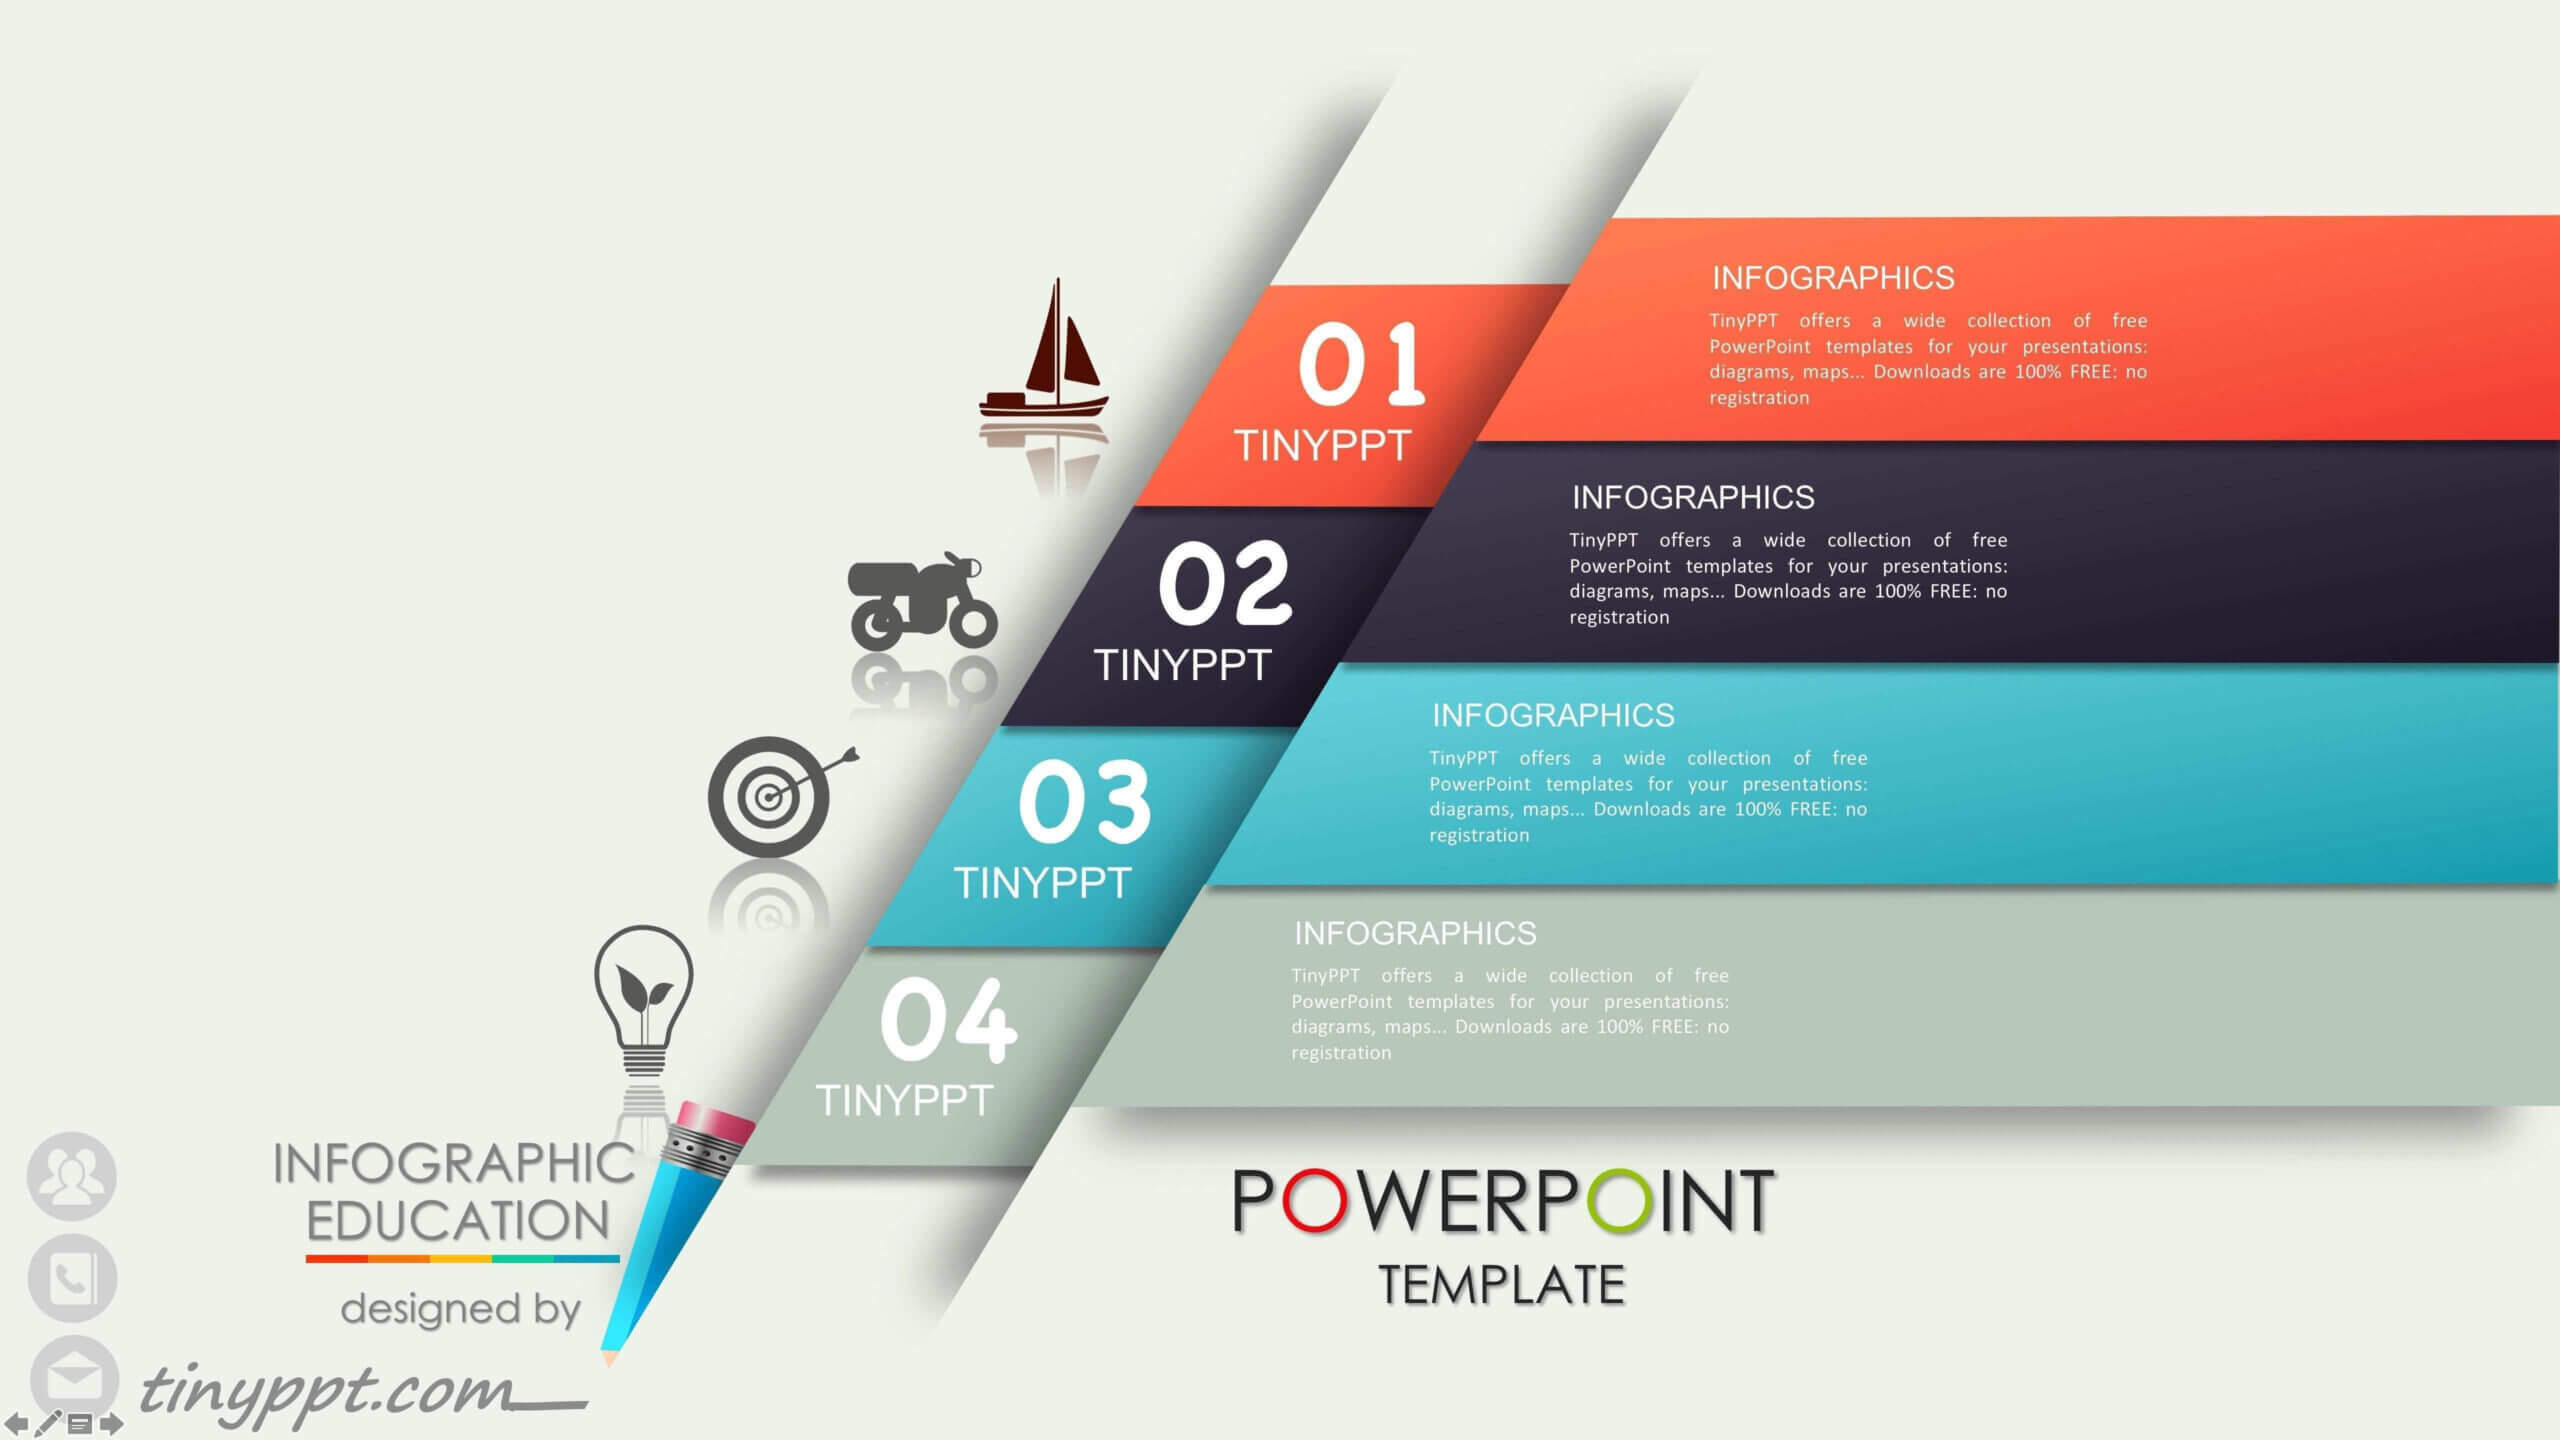 Pinbonnie Jones On Letter Formats | Business Powerpoint Intended For Powerpoint Sample Templates Free Download